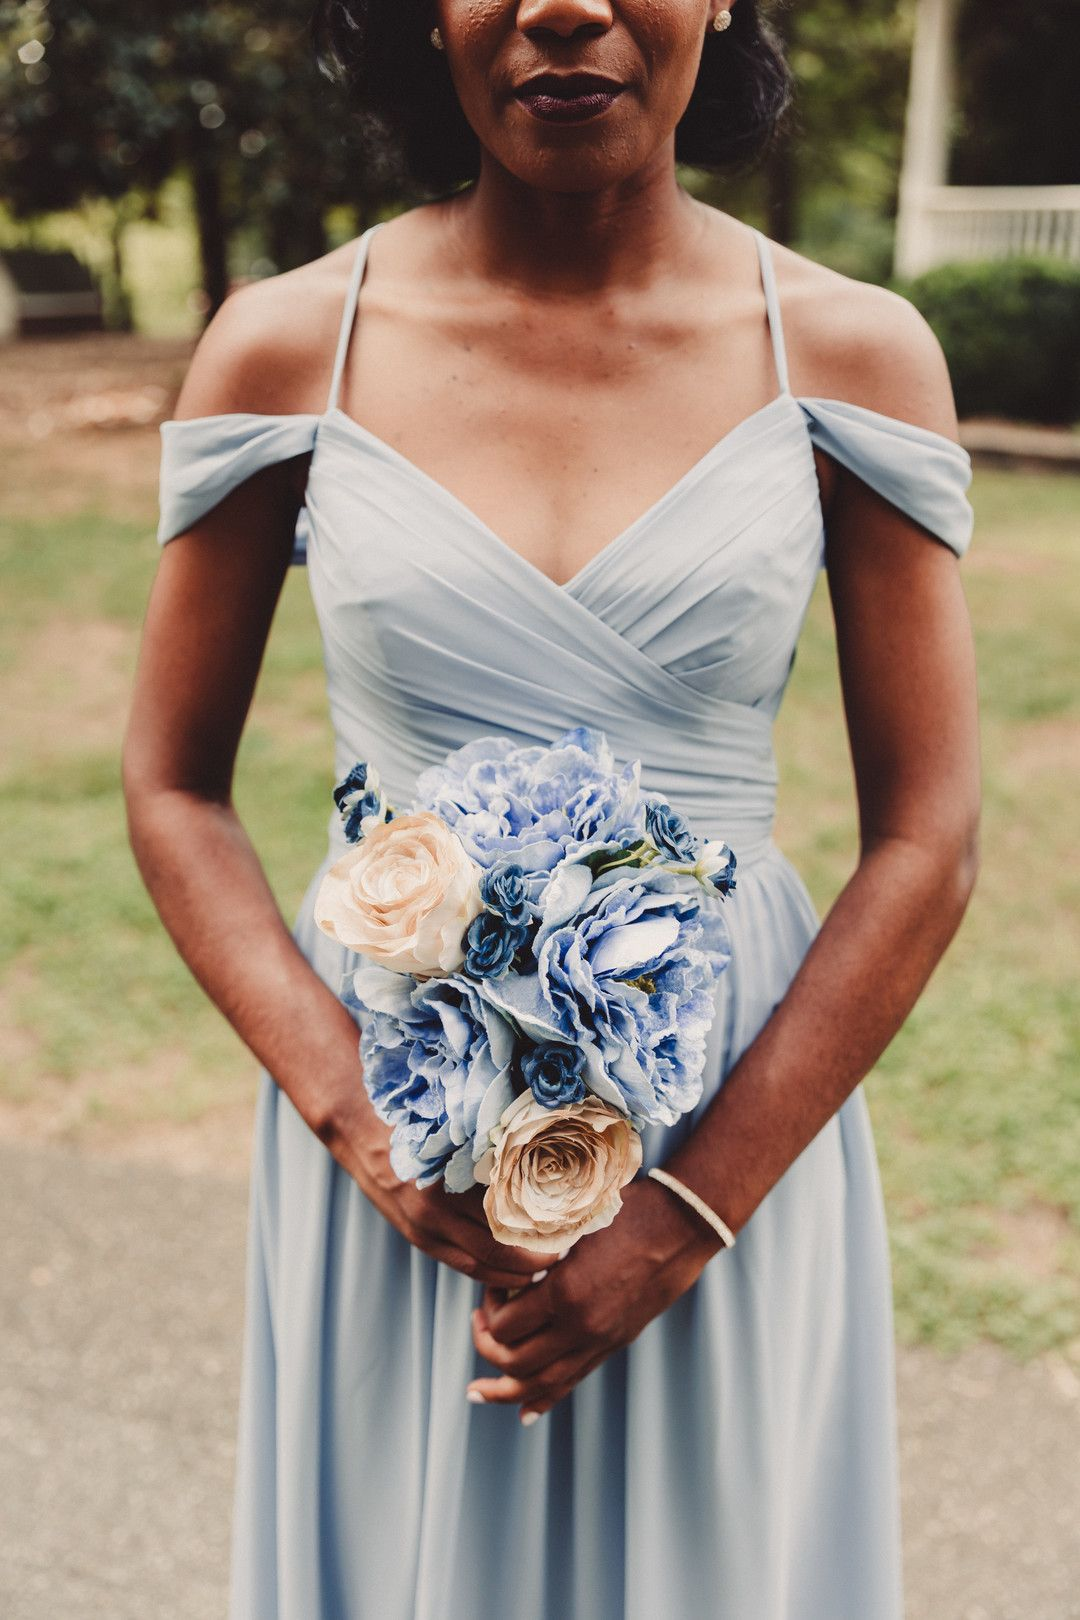 Outdoor wedding at the saratoga springs mount pleasant nc